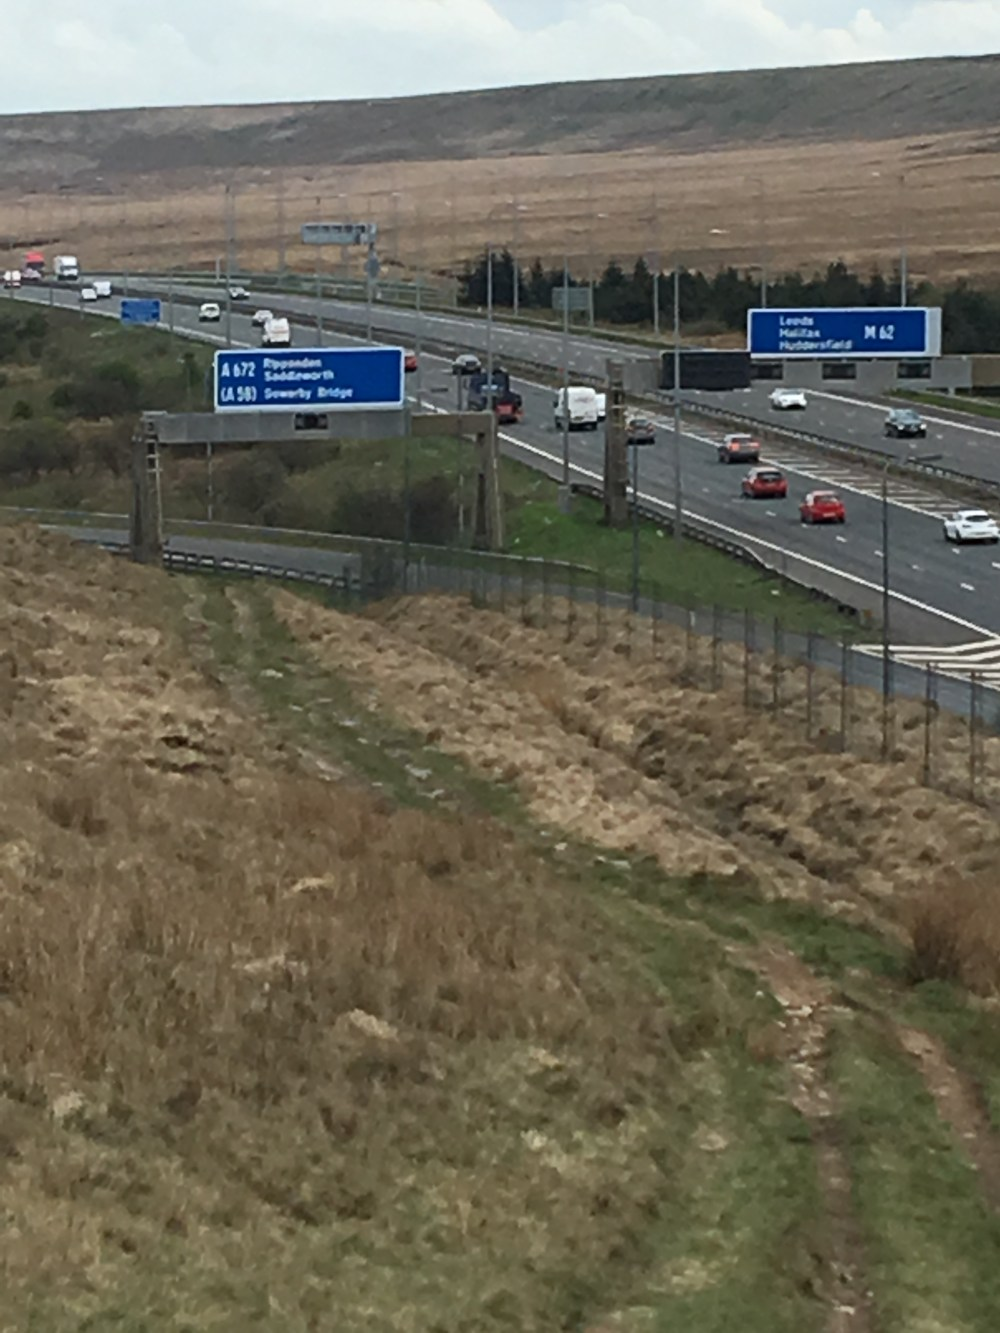 M62 from north, Day 42